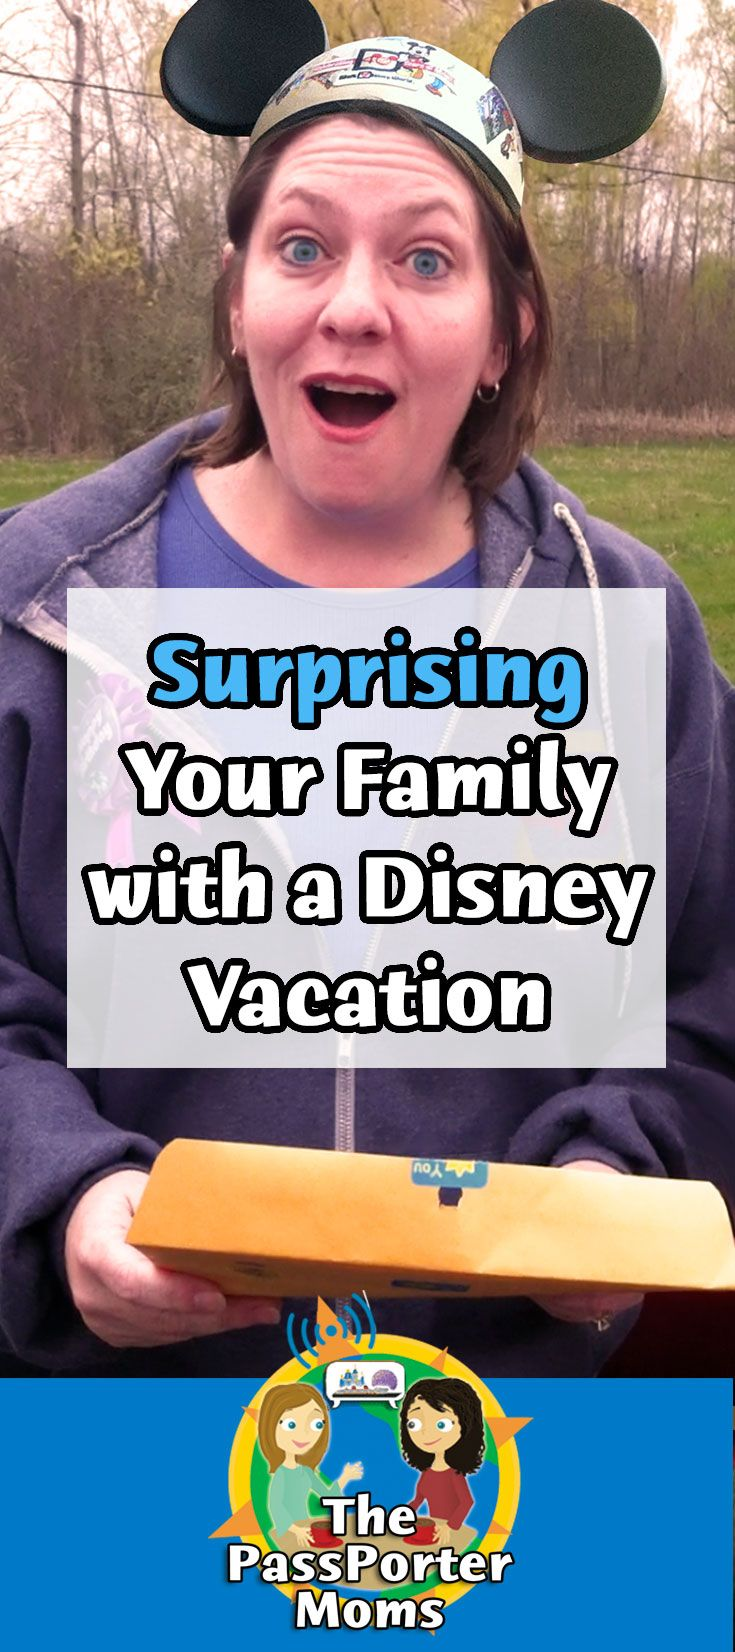 Surprising Your Family With A Disney Vacation | Disney Every Week With the PassPorter Moms Podcast